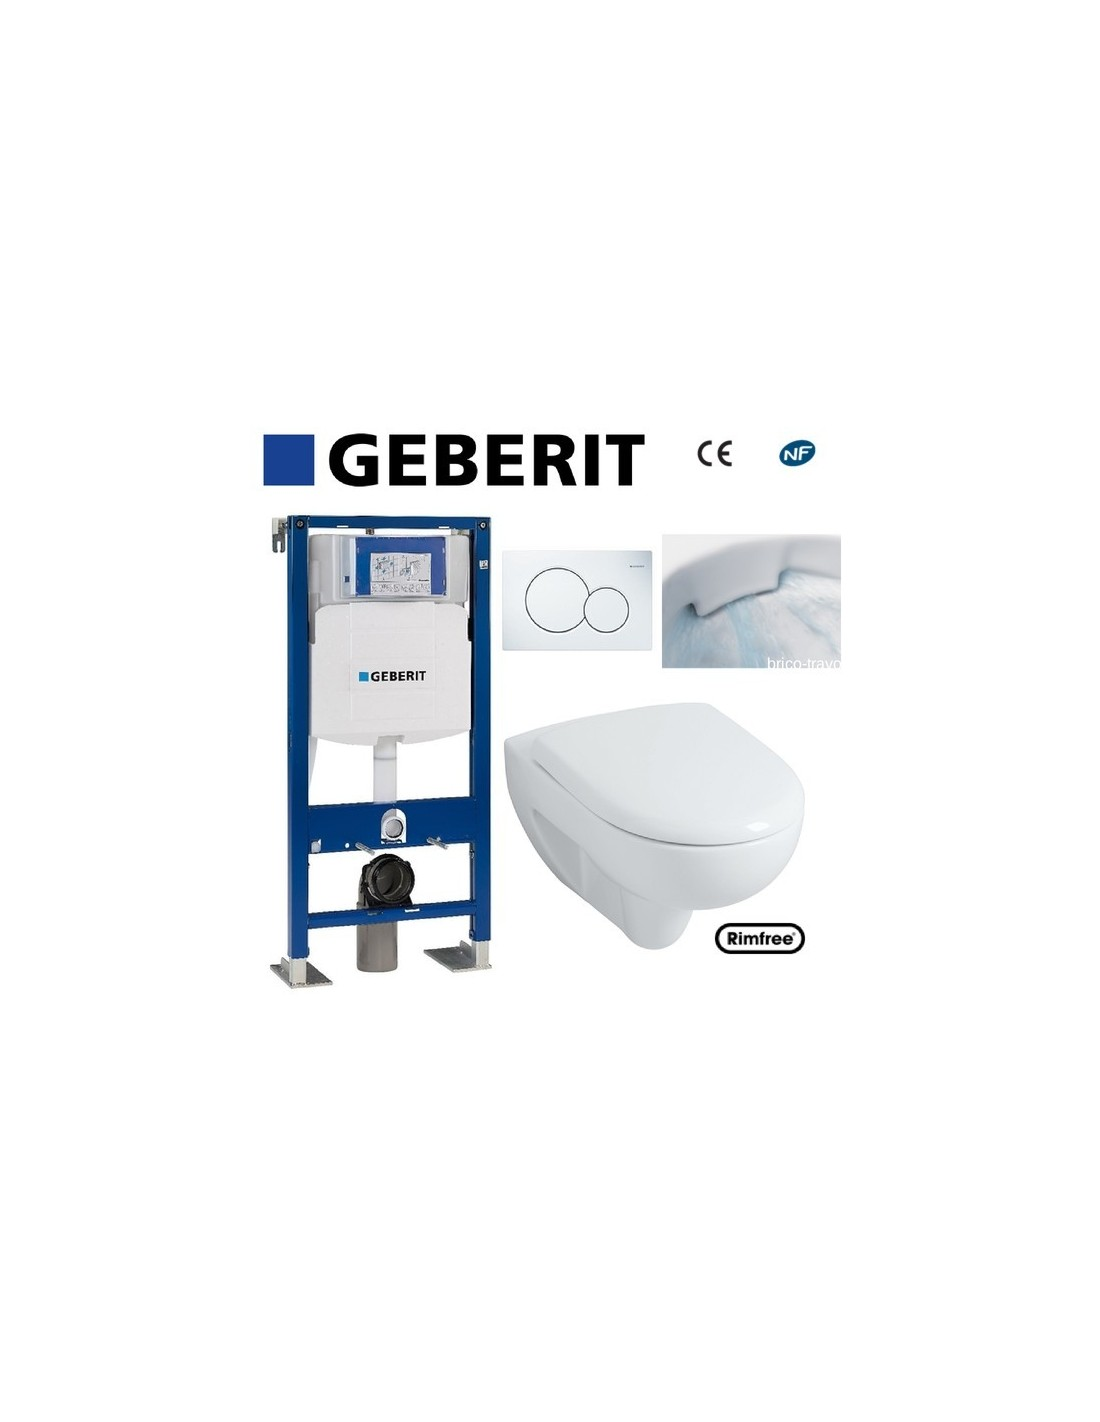 Wc suspendu geberit plaque blanche rimfree complet ebay for Pose wc suspendu geberit